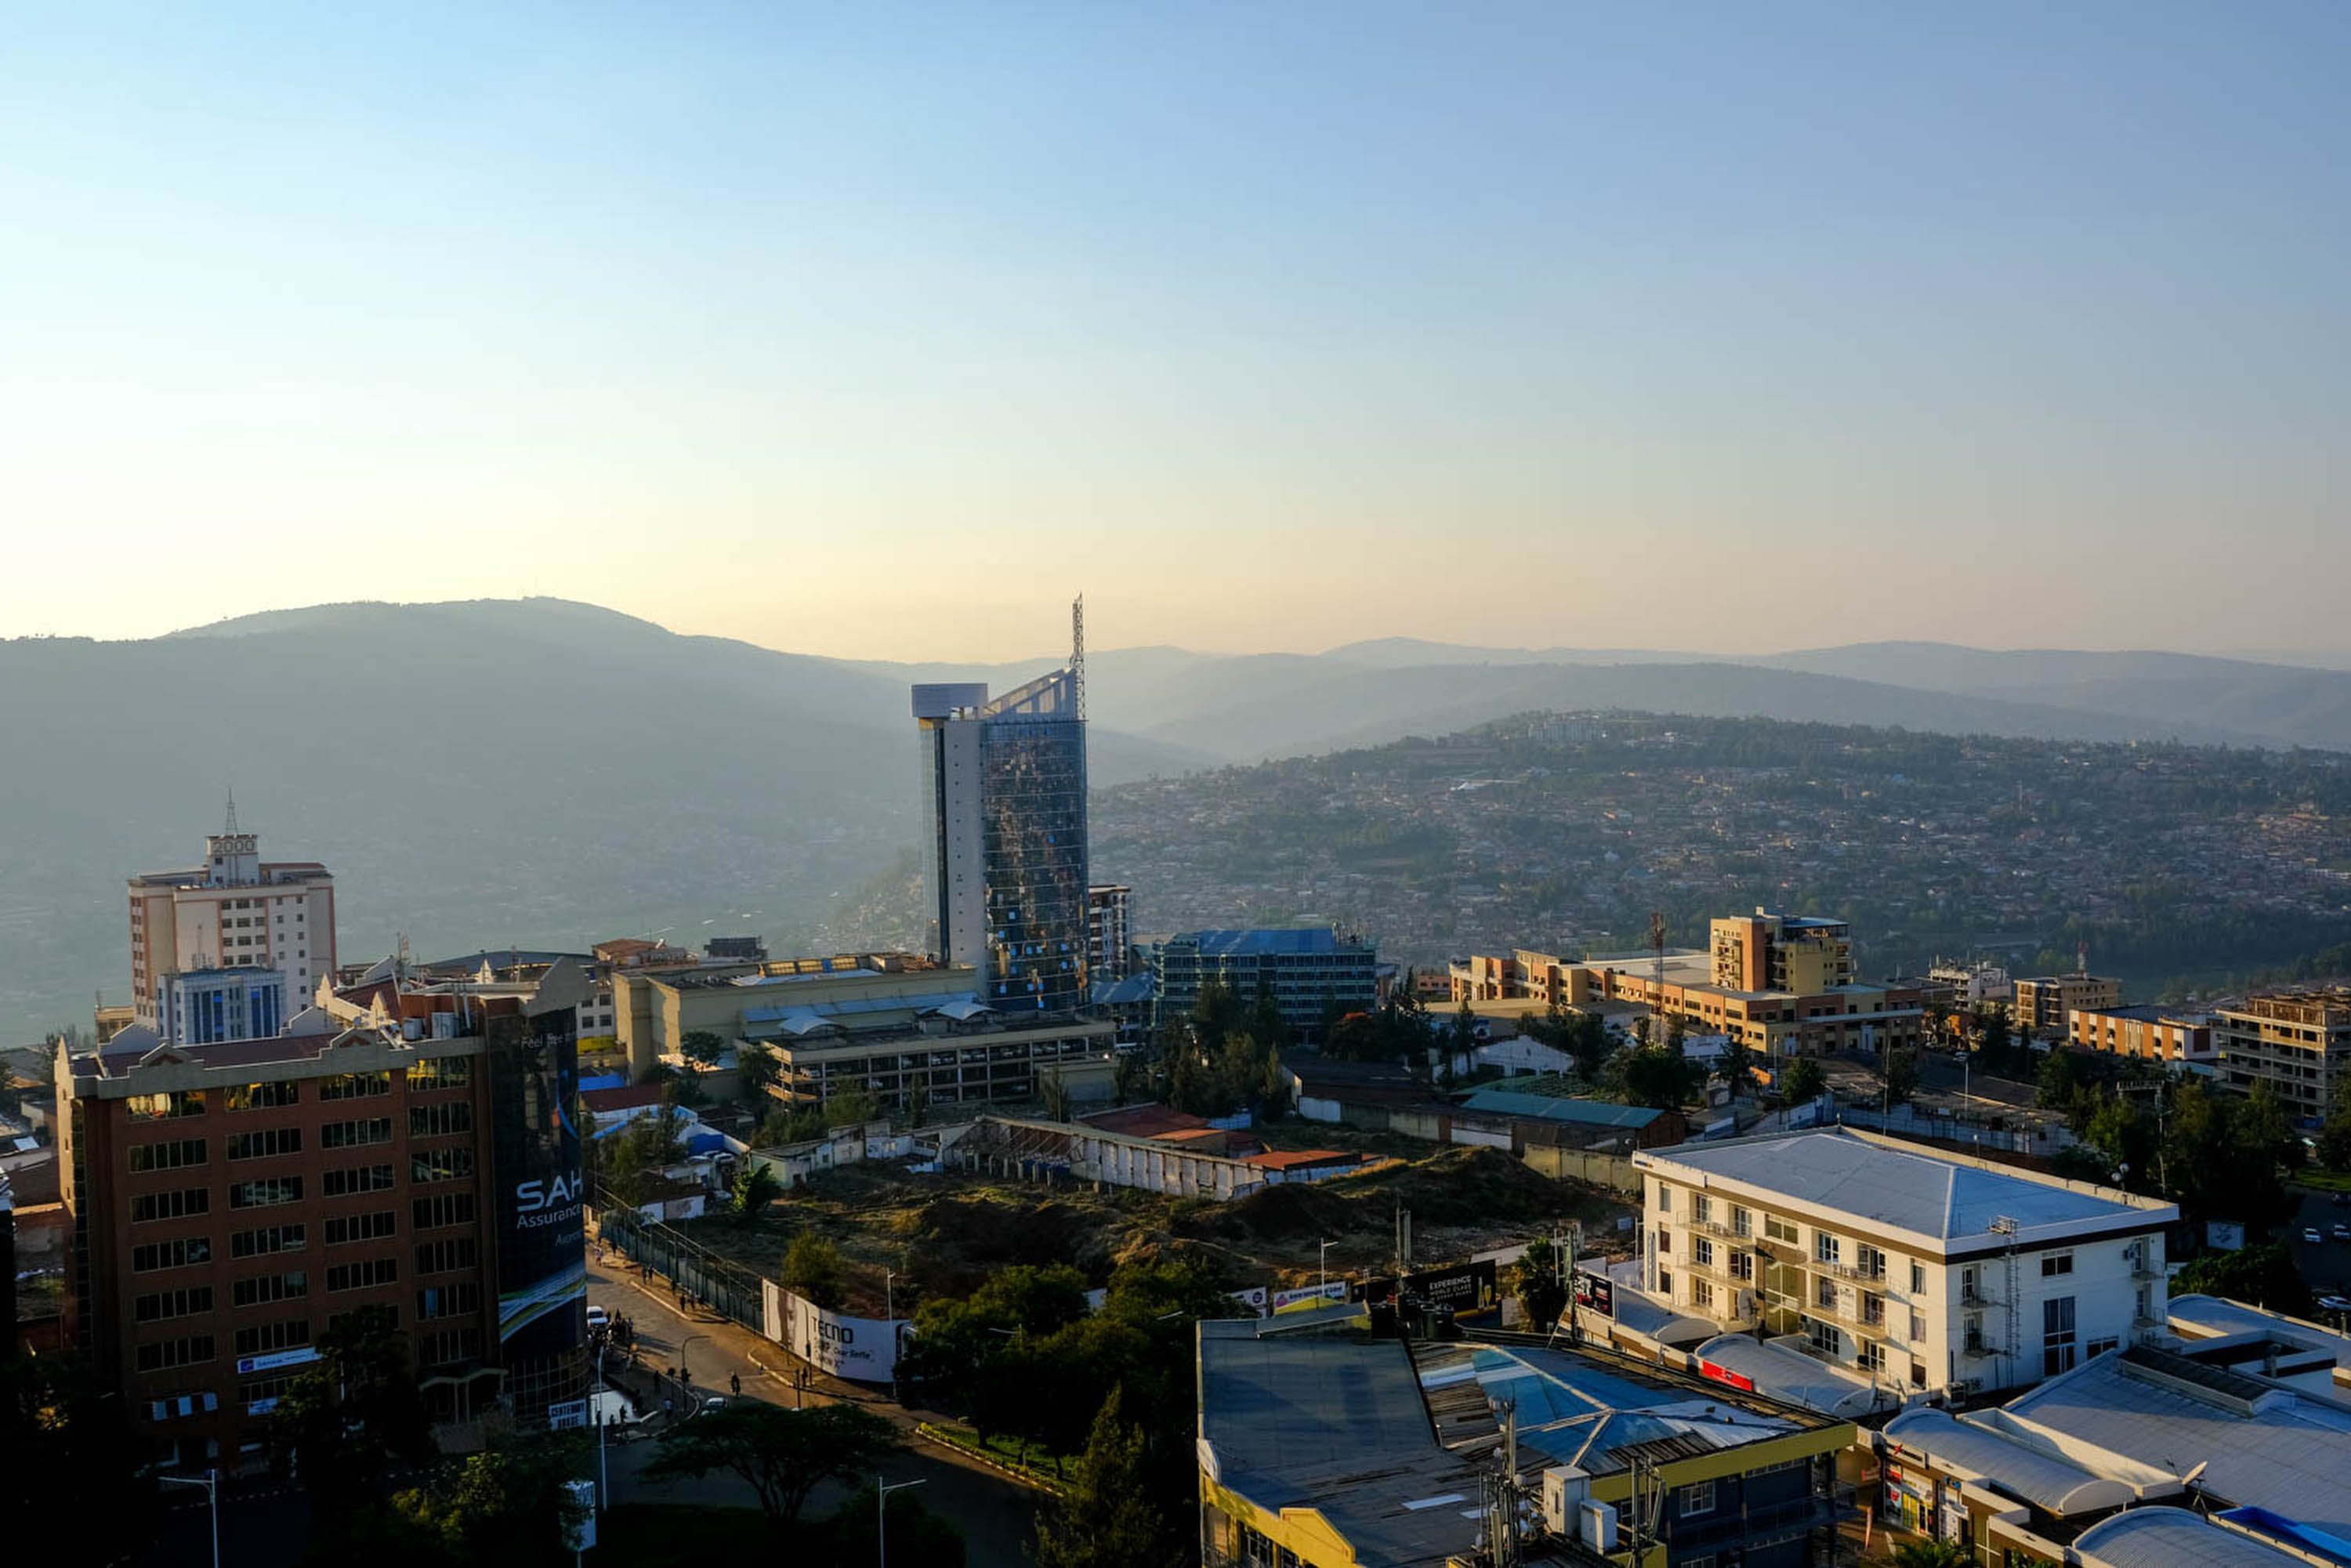 Kigalis expanding skyline. Rwanda has become more financially prosperous and stable under Kagames leadership, but endemic poverty remains an issue nationwide, with around 51% of the population living under the international poverty line.